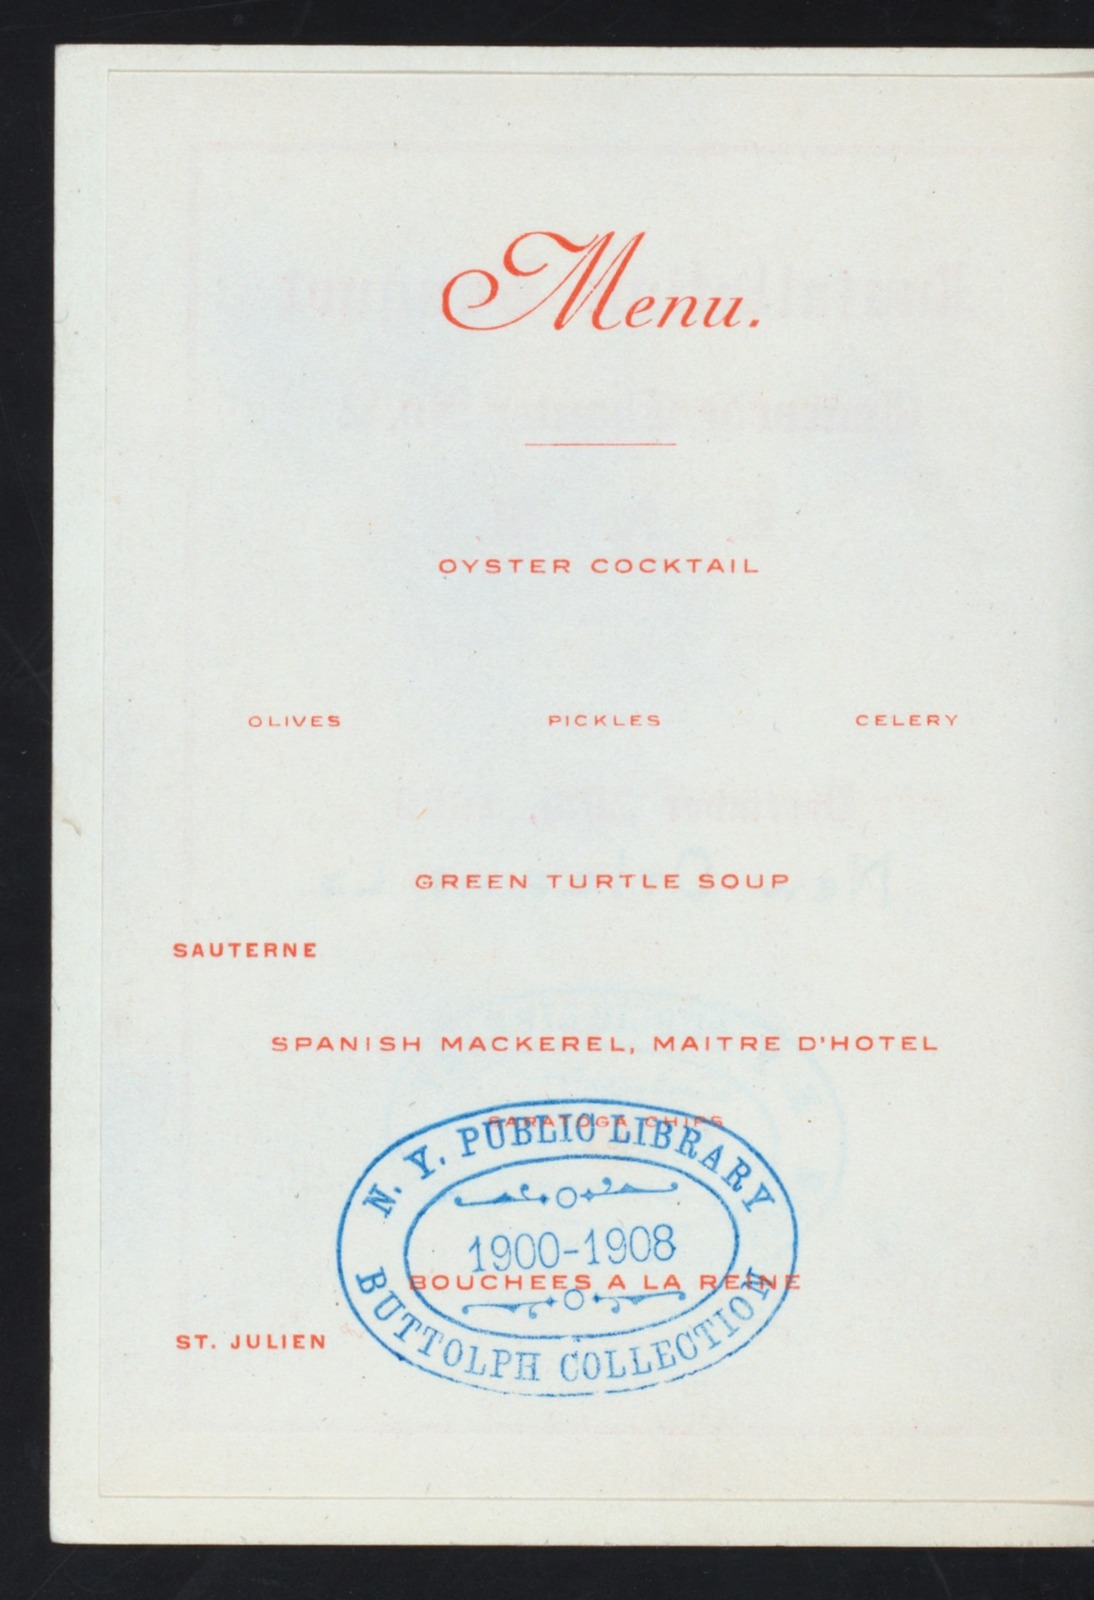 """INSTALLATION BANQUET [held by] CONCORDE CHAPTER NO.2 R.A.M. [at] """"NEW HICKORY RESTAURANT, NEW ORLEANS, LA"""" (REST;)"""